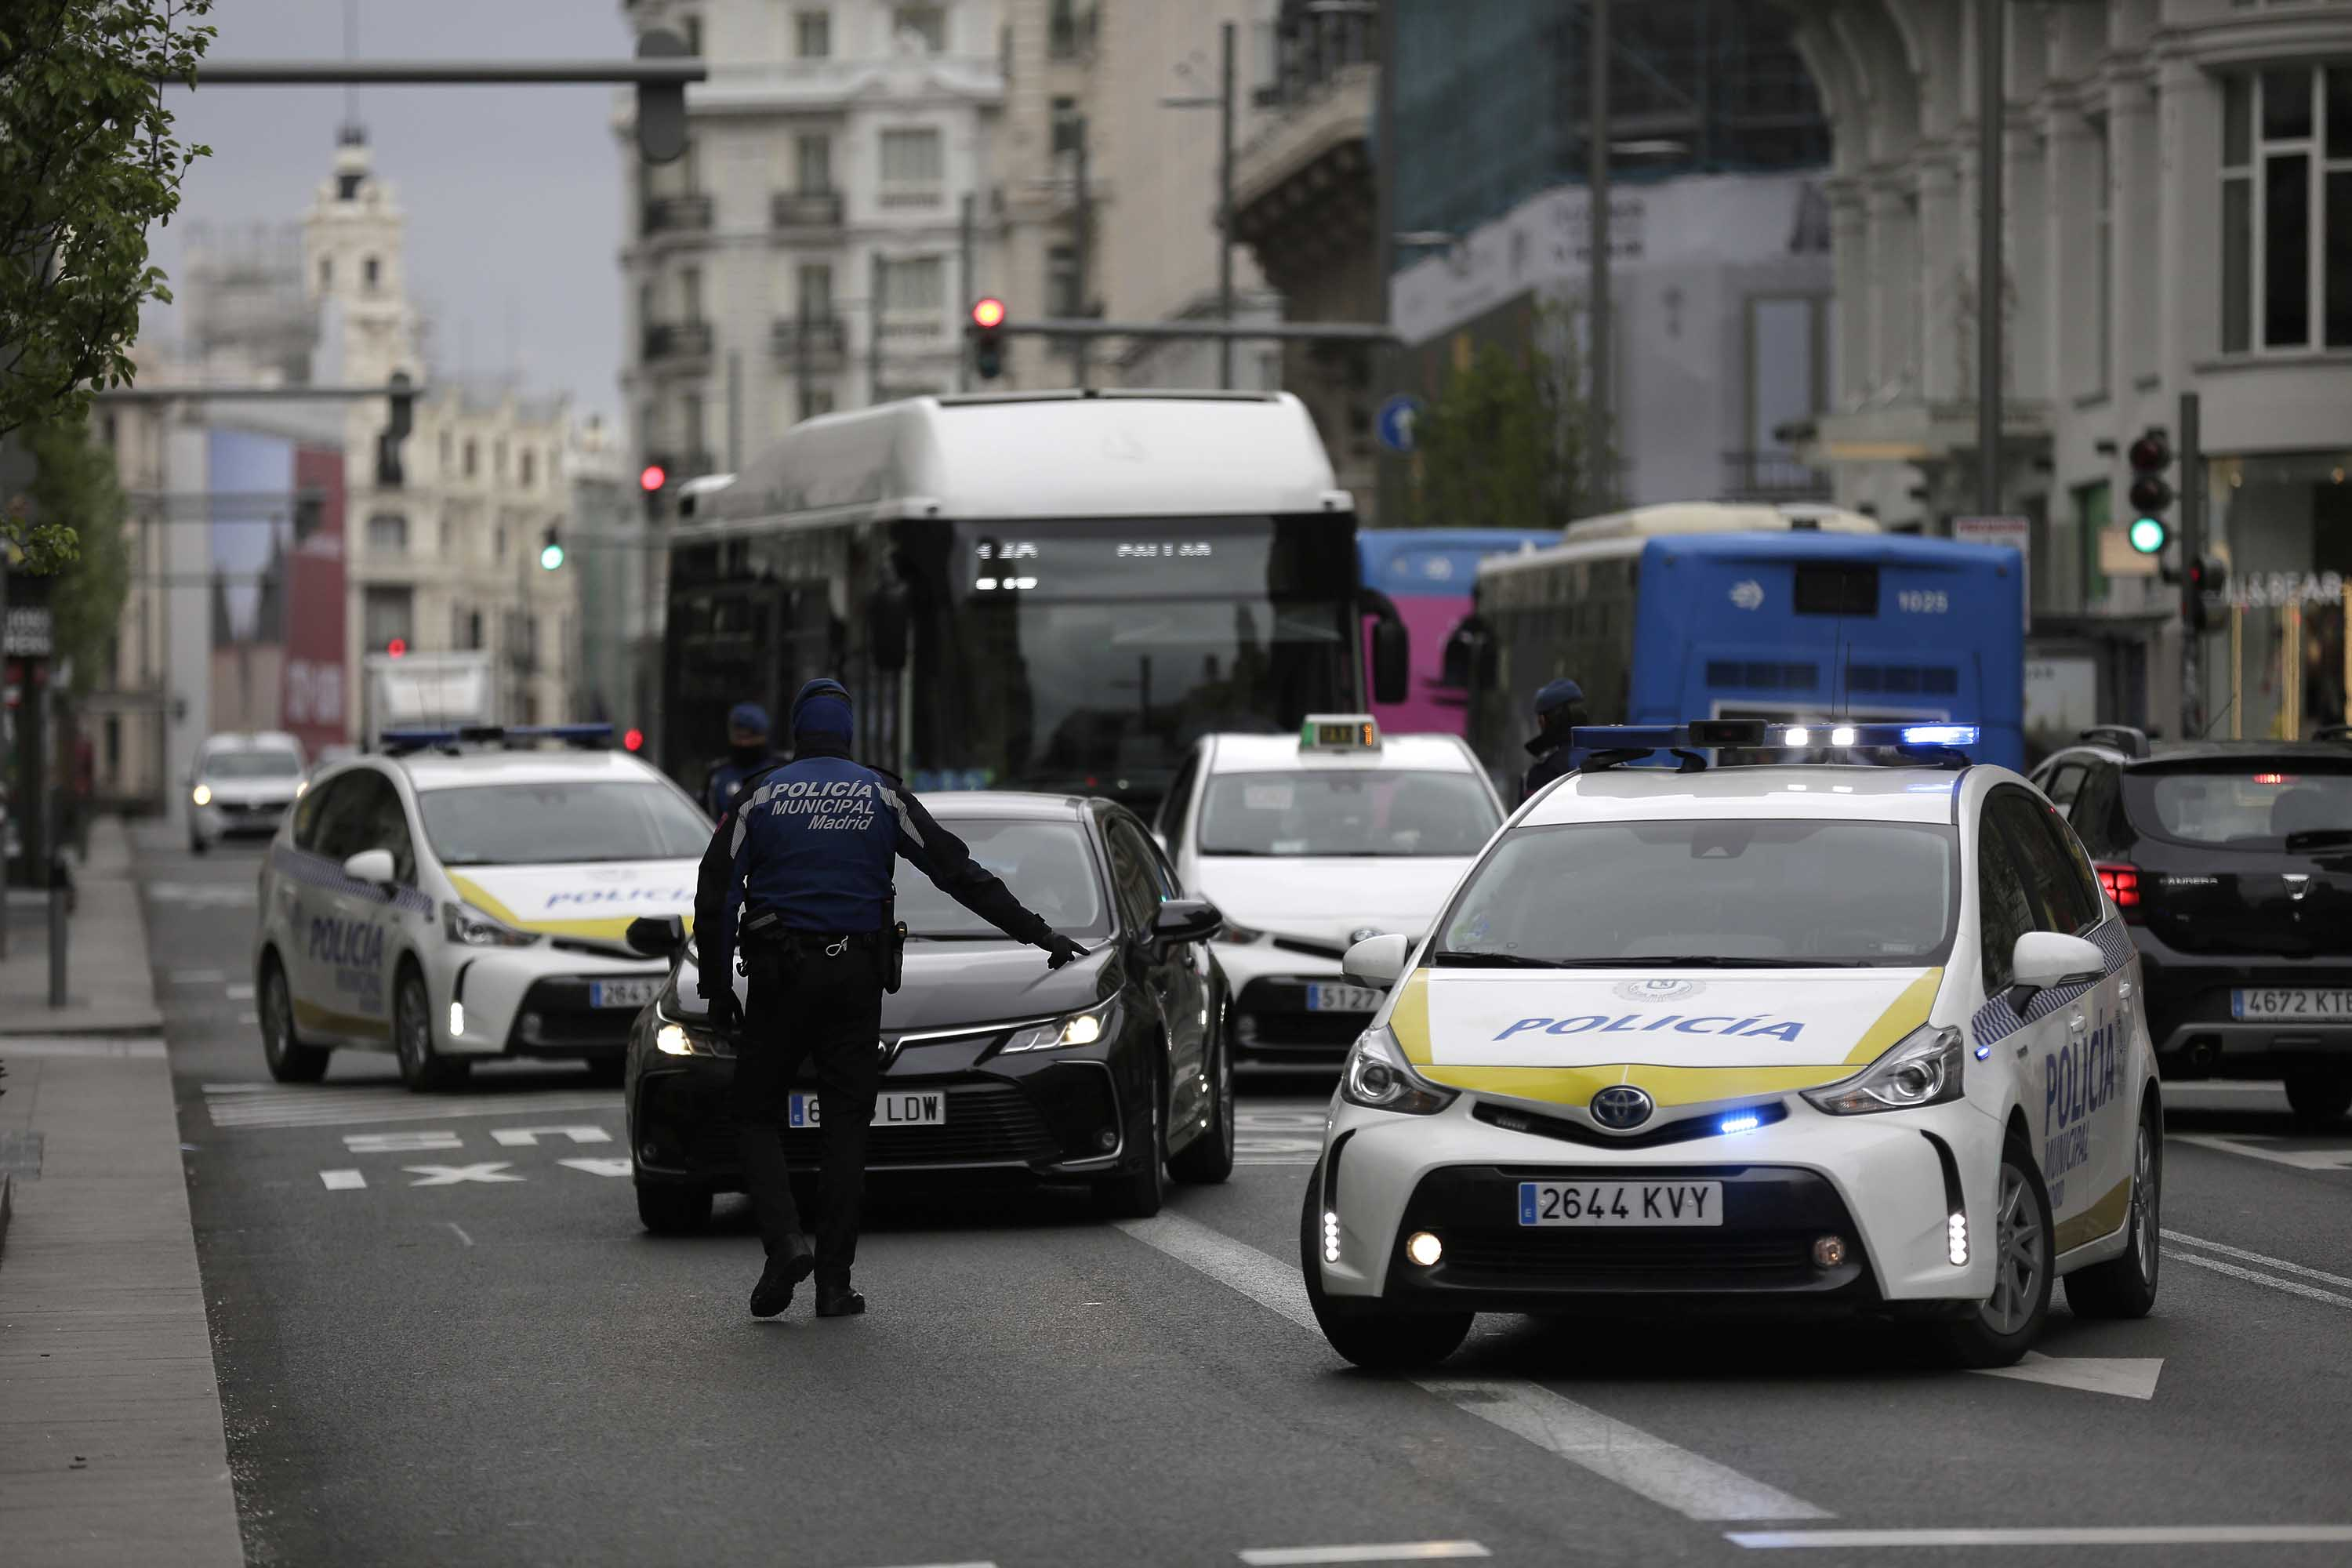 Police officers stop a car at a control point in Madrid, Spain, on March 20.